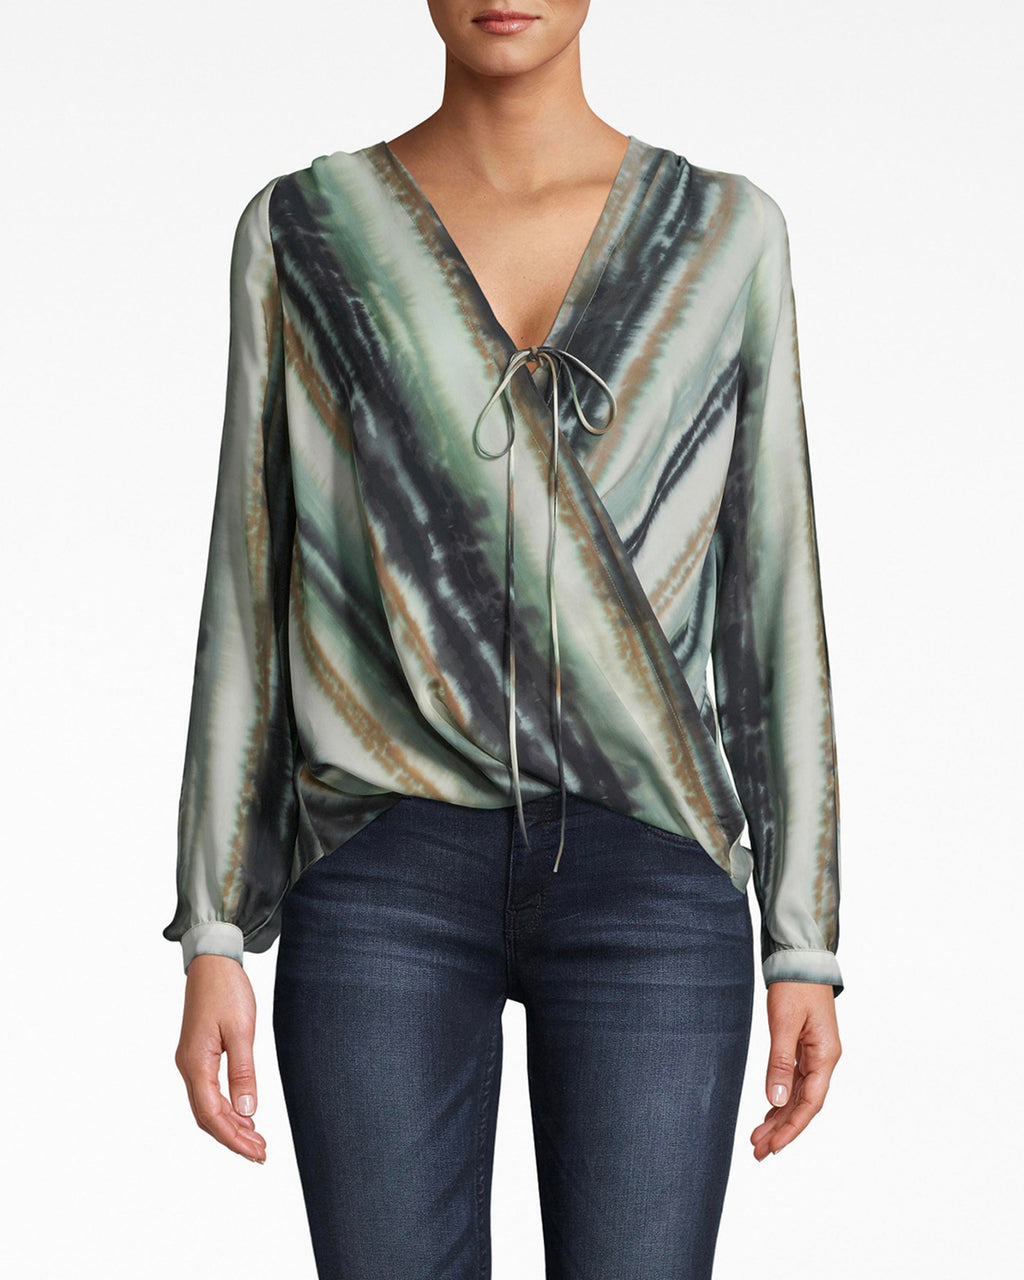 BD10279 - INK STRIPE SILK DRAPED V L/S BLOUSE - tops - blouses - Drape and go. This silk long sleeve blouse features flowing sleeves and a front bow. The fabric wrapping adds a dynamic shape. Pair back with denim or black jeans.